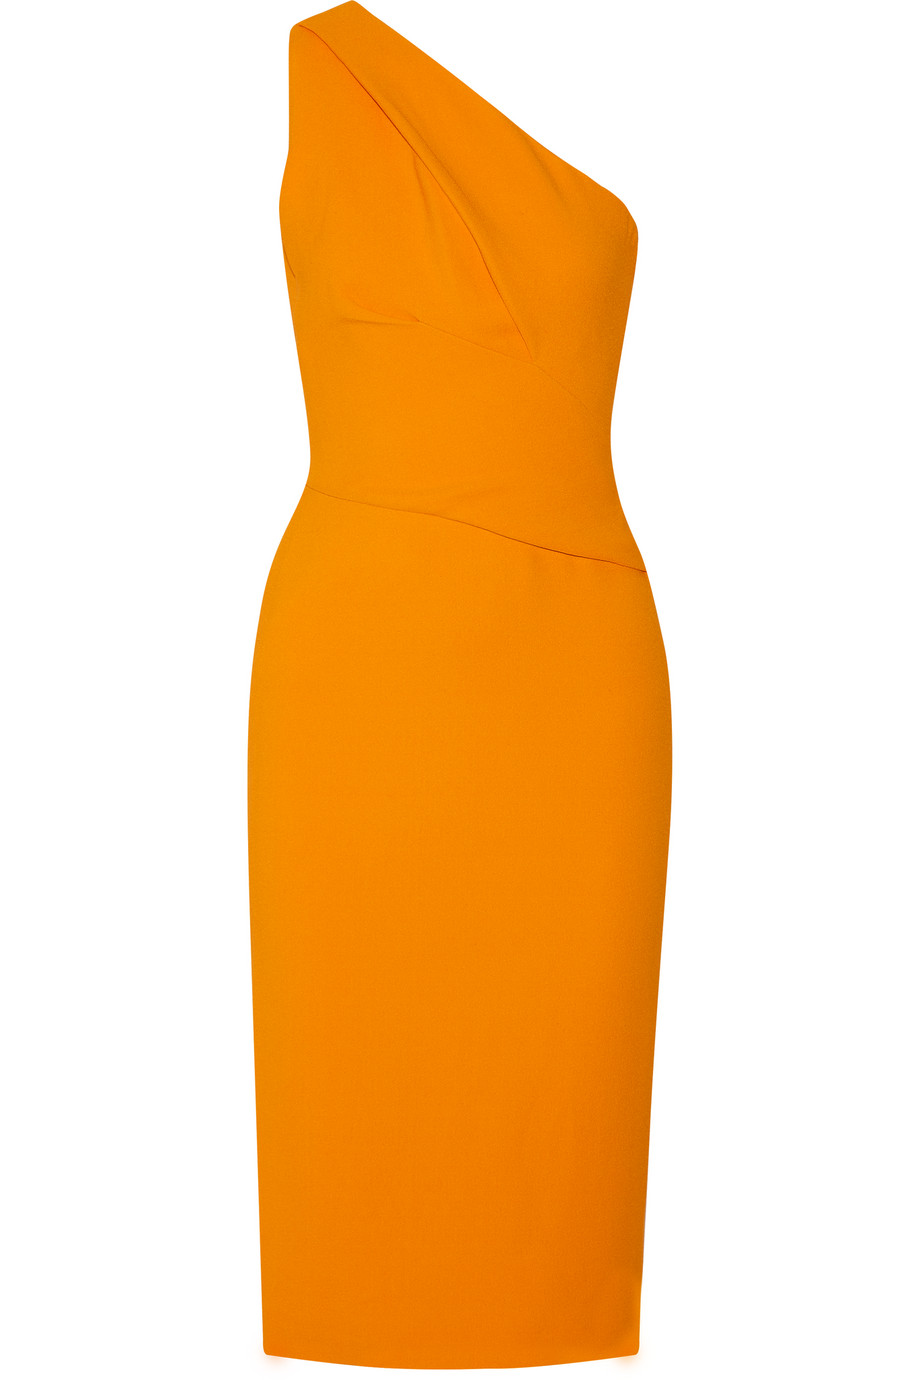 ae9c8d3a946ed Narciso Rodriguez One-Shoulder Stretch-Crepe Dress